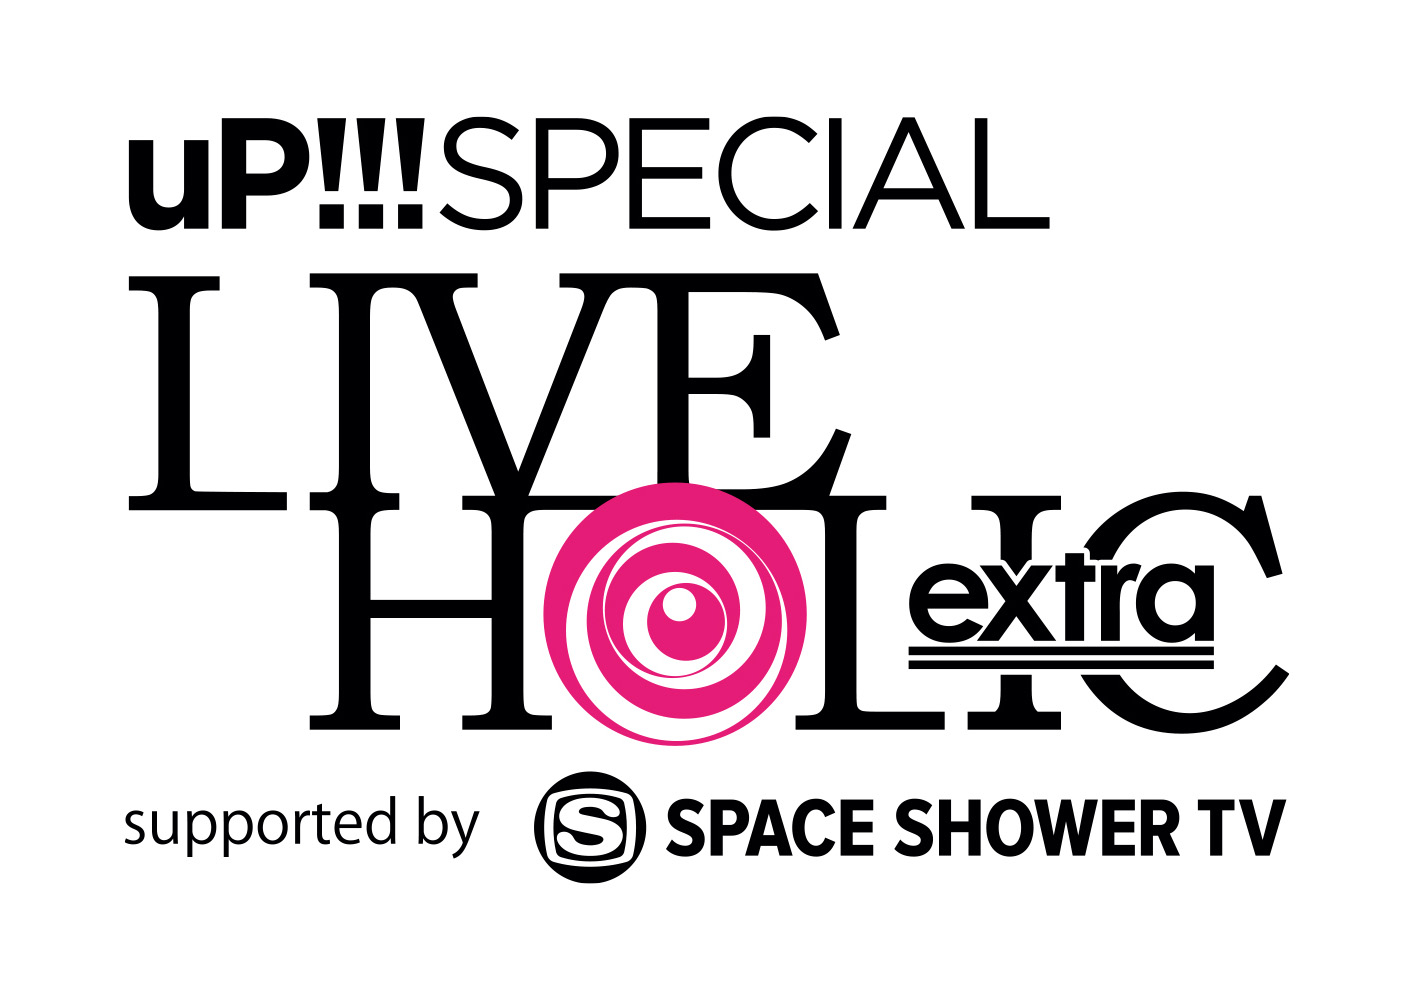 【千葉】-LIVE HOLIC 5th ANNIVERSARY- uP!!! SPECIAL LIVE HOLIC extra vol.3 (幕張メッセ)